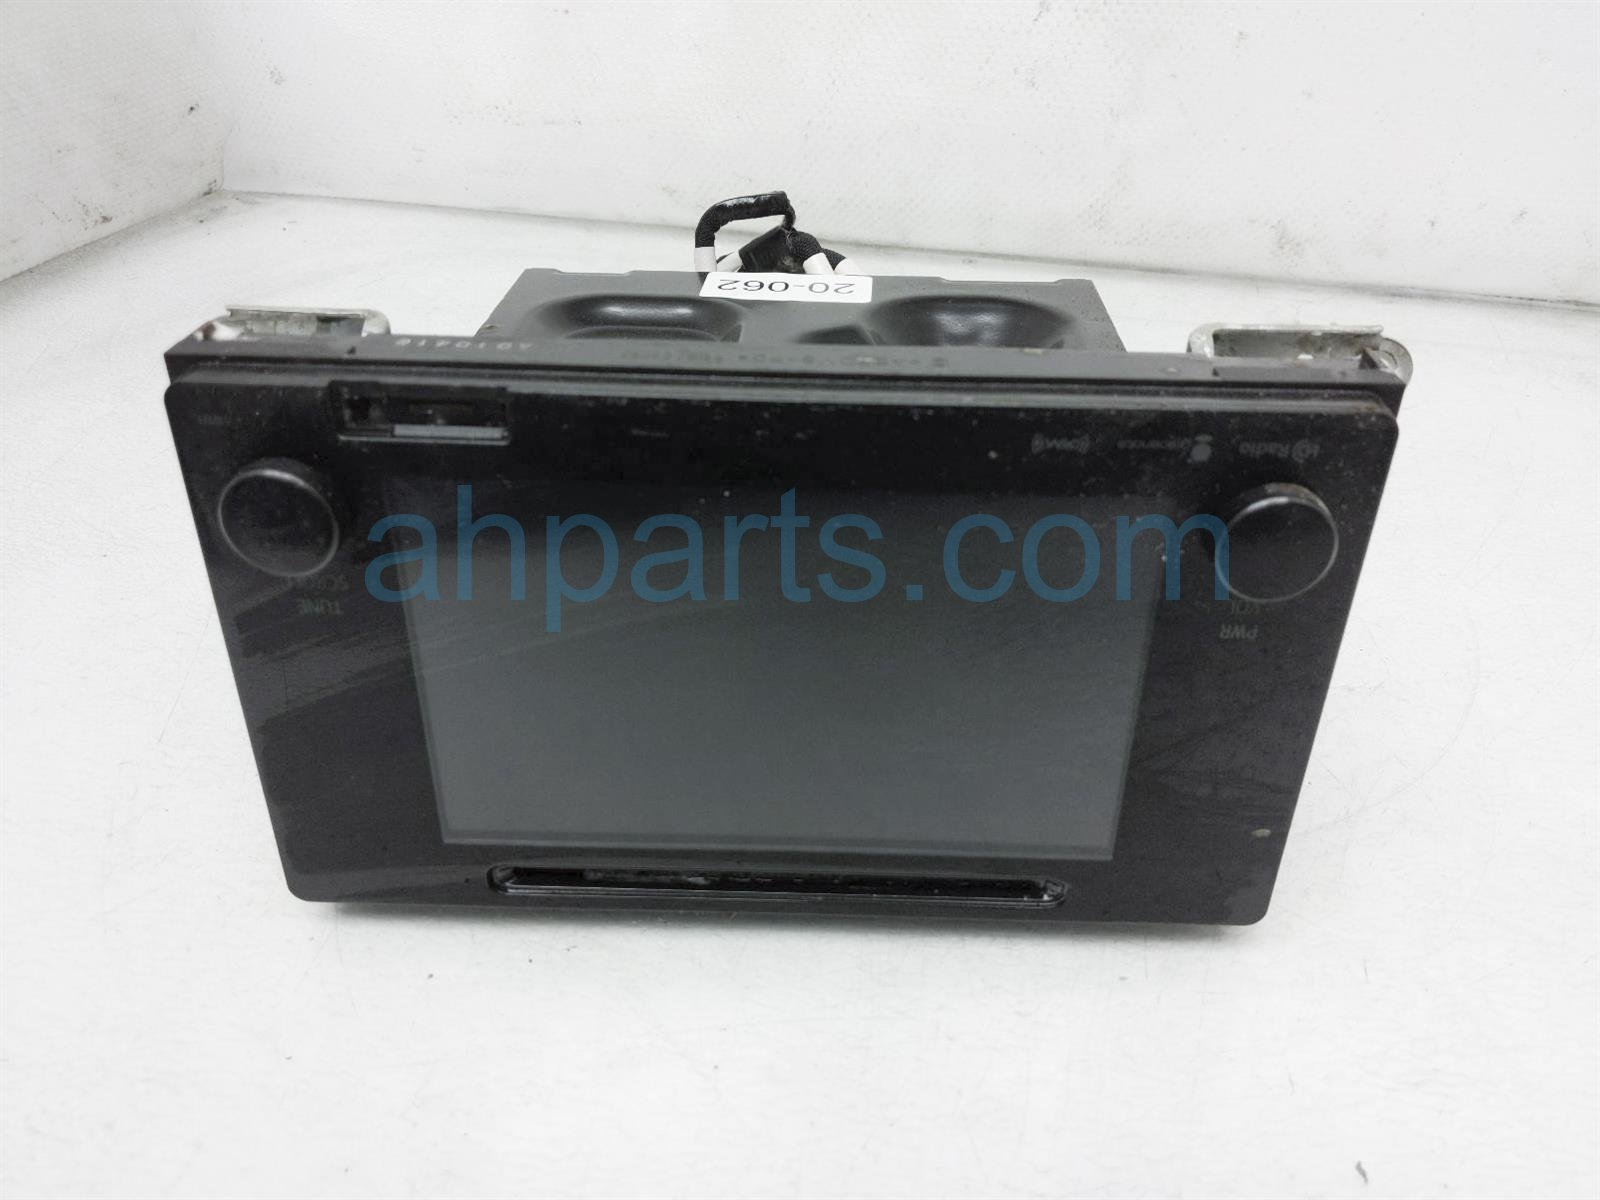 2017 Toyota Tacoma Am/fm/cd Radio Display Assy 86100 04160 Replacement